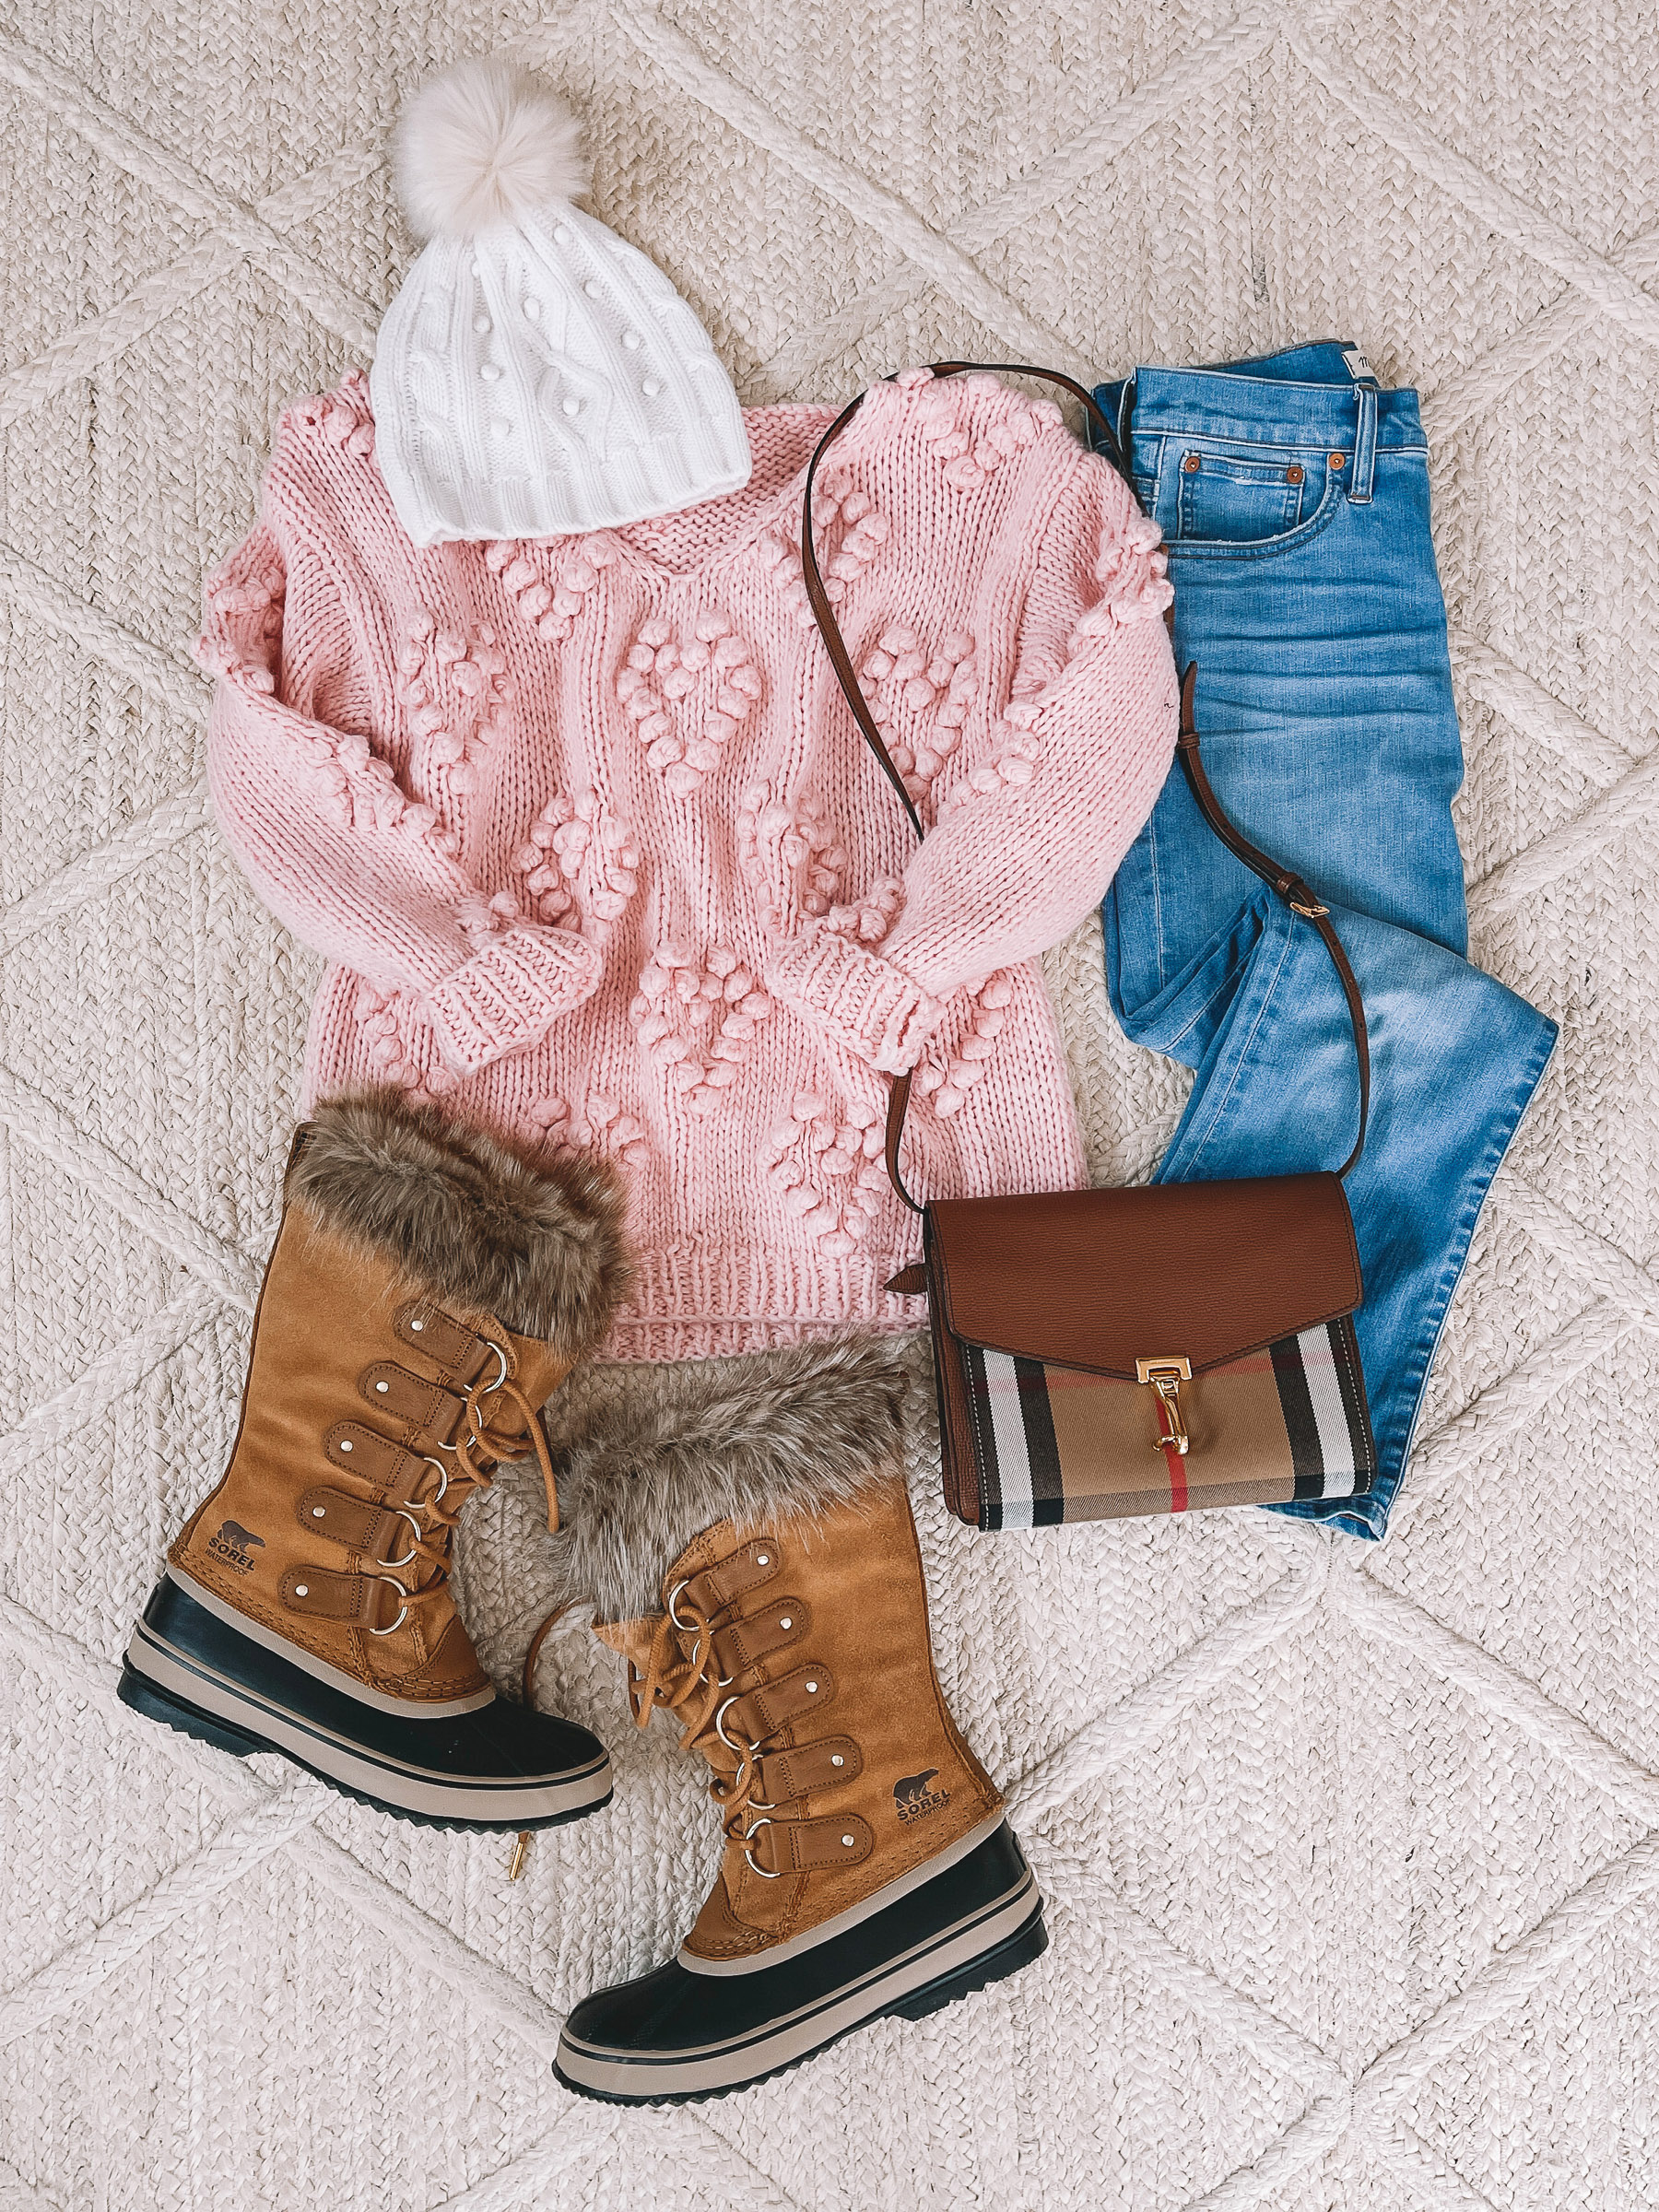 10 Preppy Valentines Day Outfits